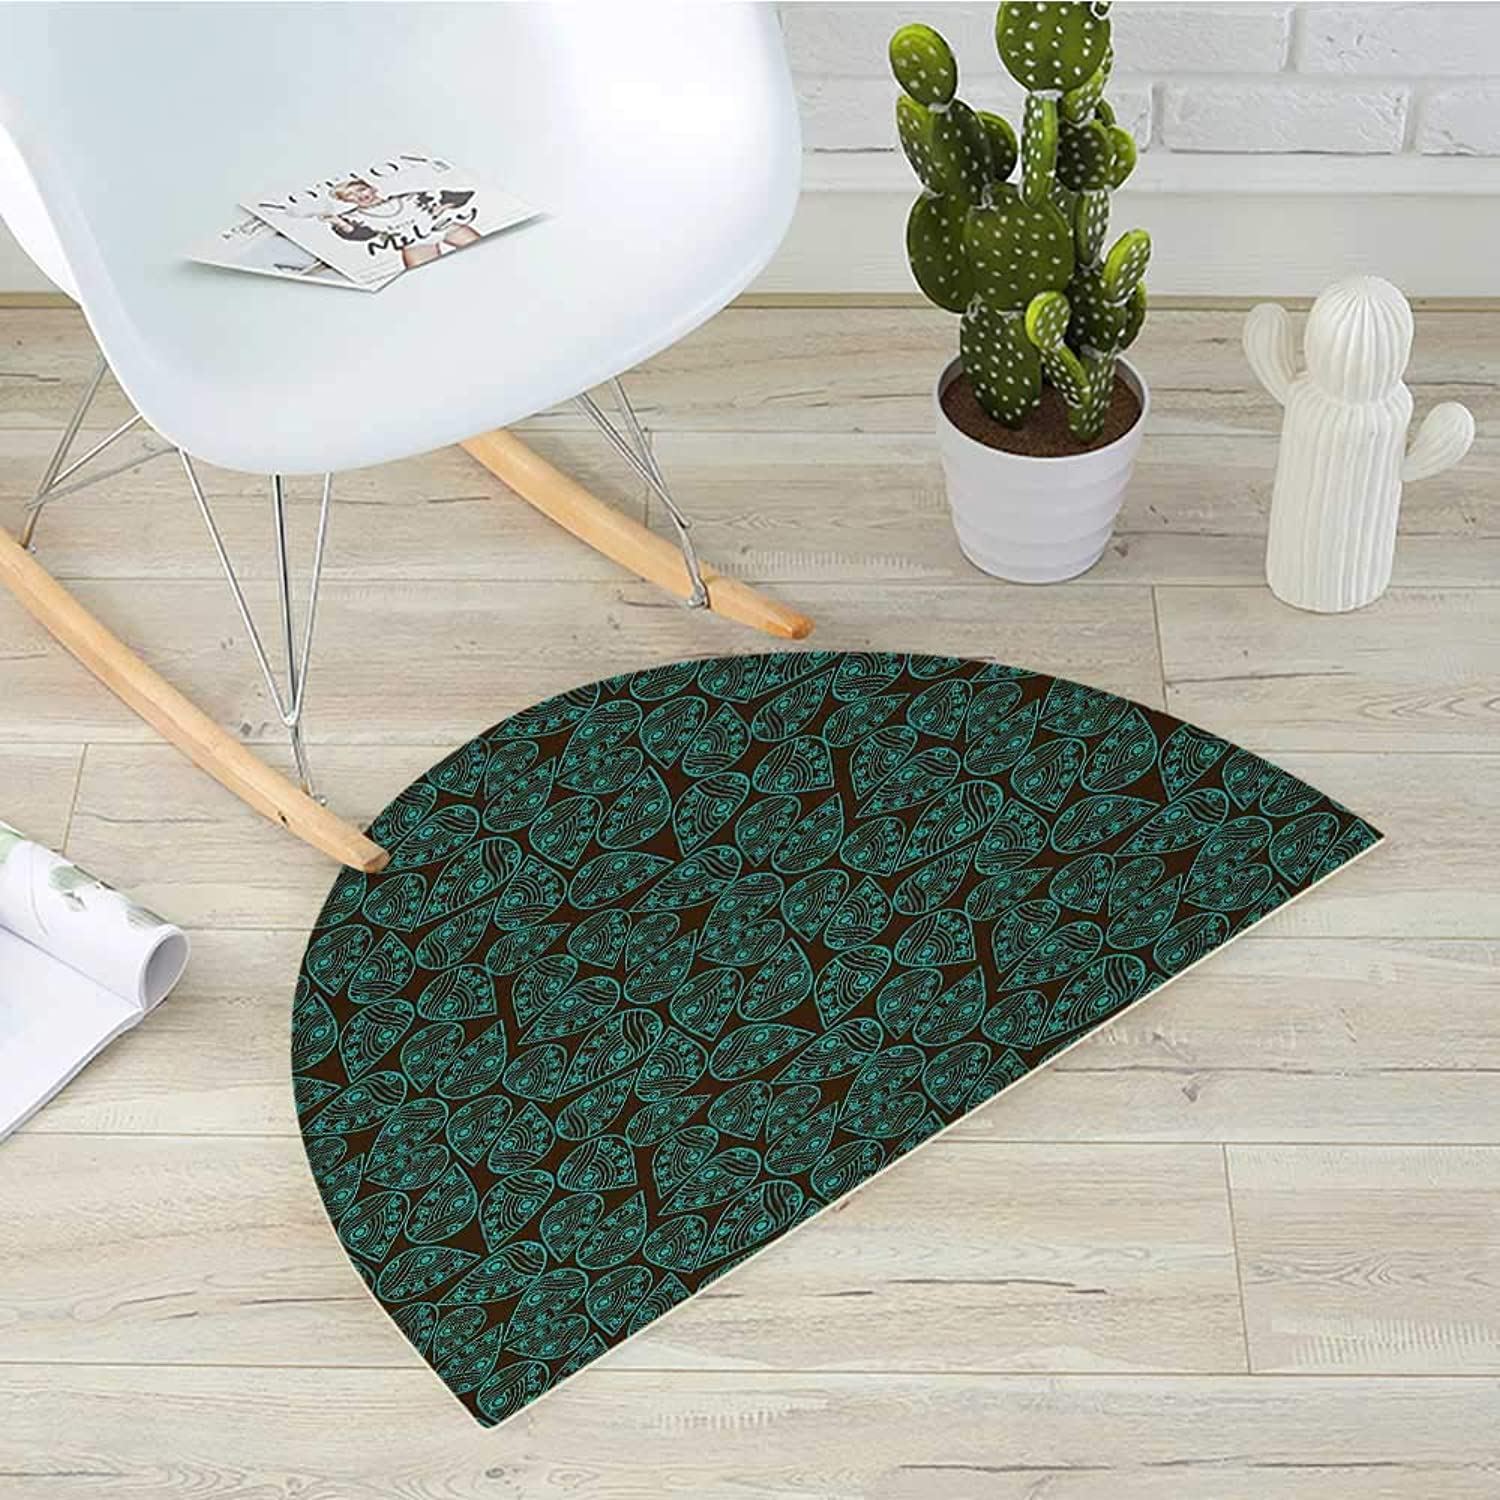 Ethnic Semicircular CushionEastern Asian Style Leaf Pattern with Traditional Folk Feng Shui Concept Entry Door Mat H 43.3  xD 64.9  Seal Brown Turquoise